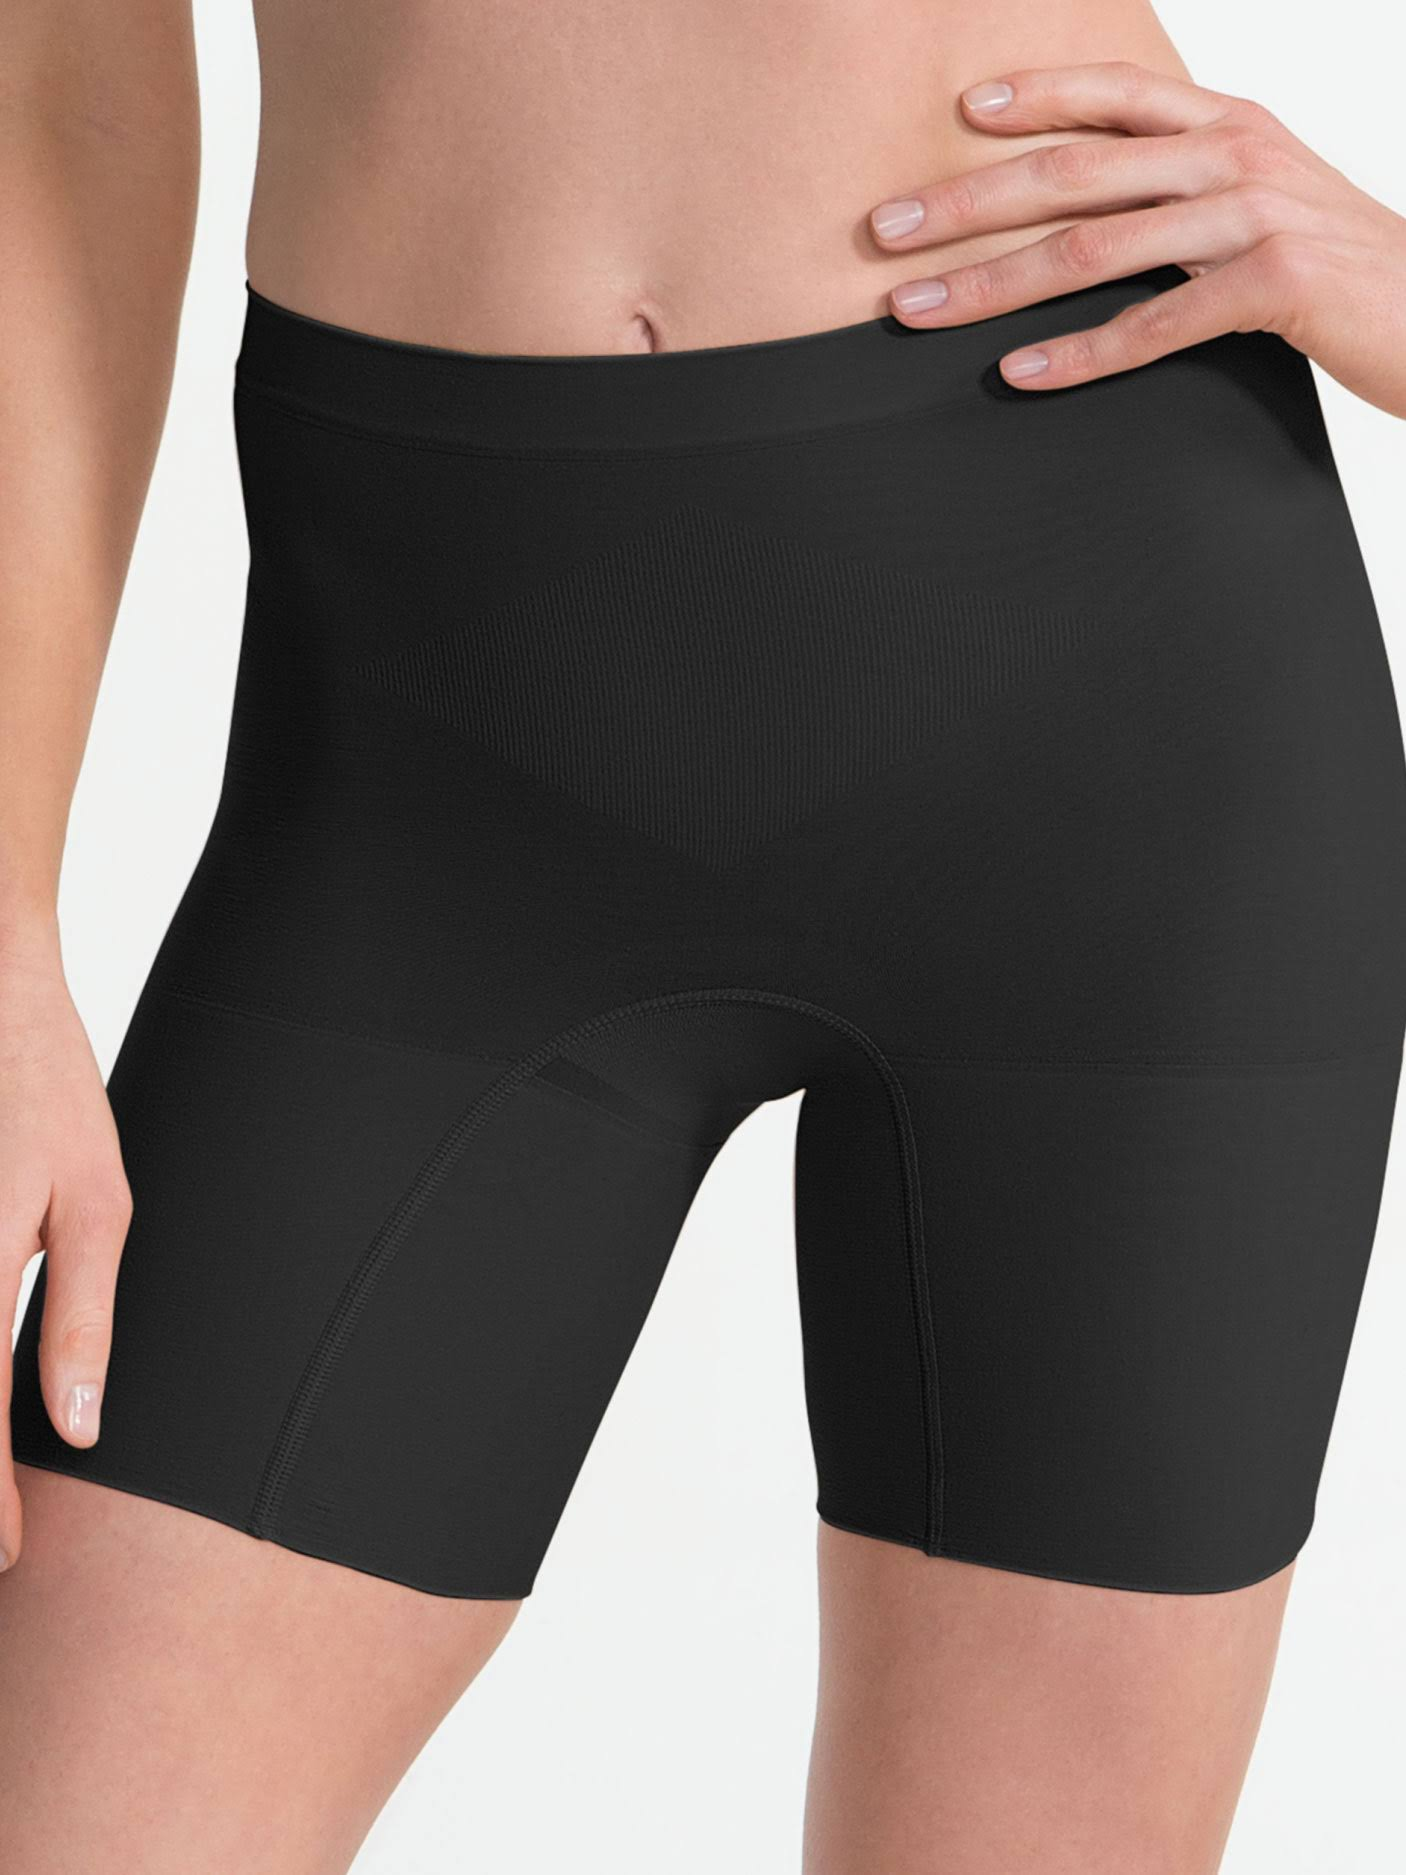 Spanx Womens Power Shorts - Black